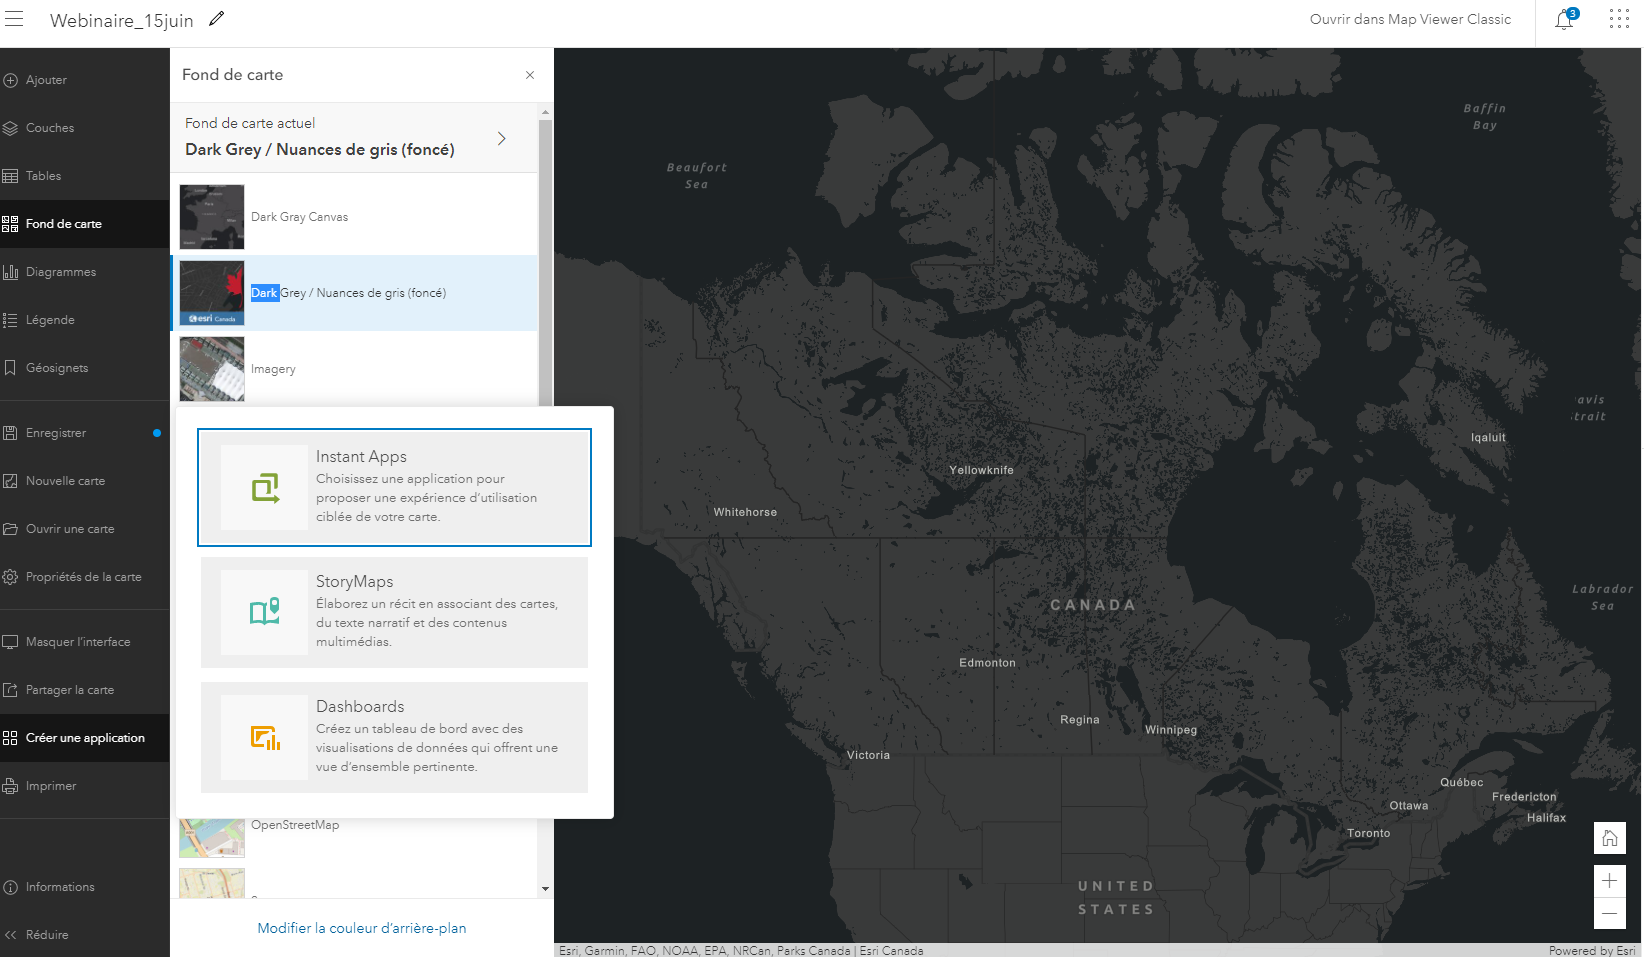 ArcGIS Online map viewer with Instant Apps drop-down menu displayed.